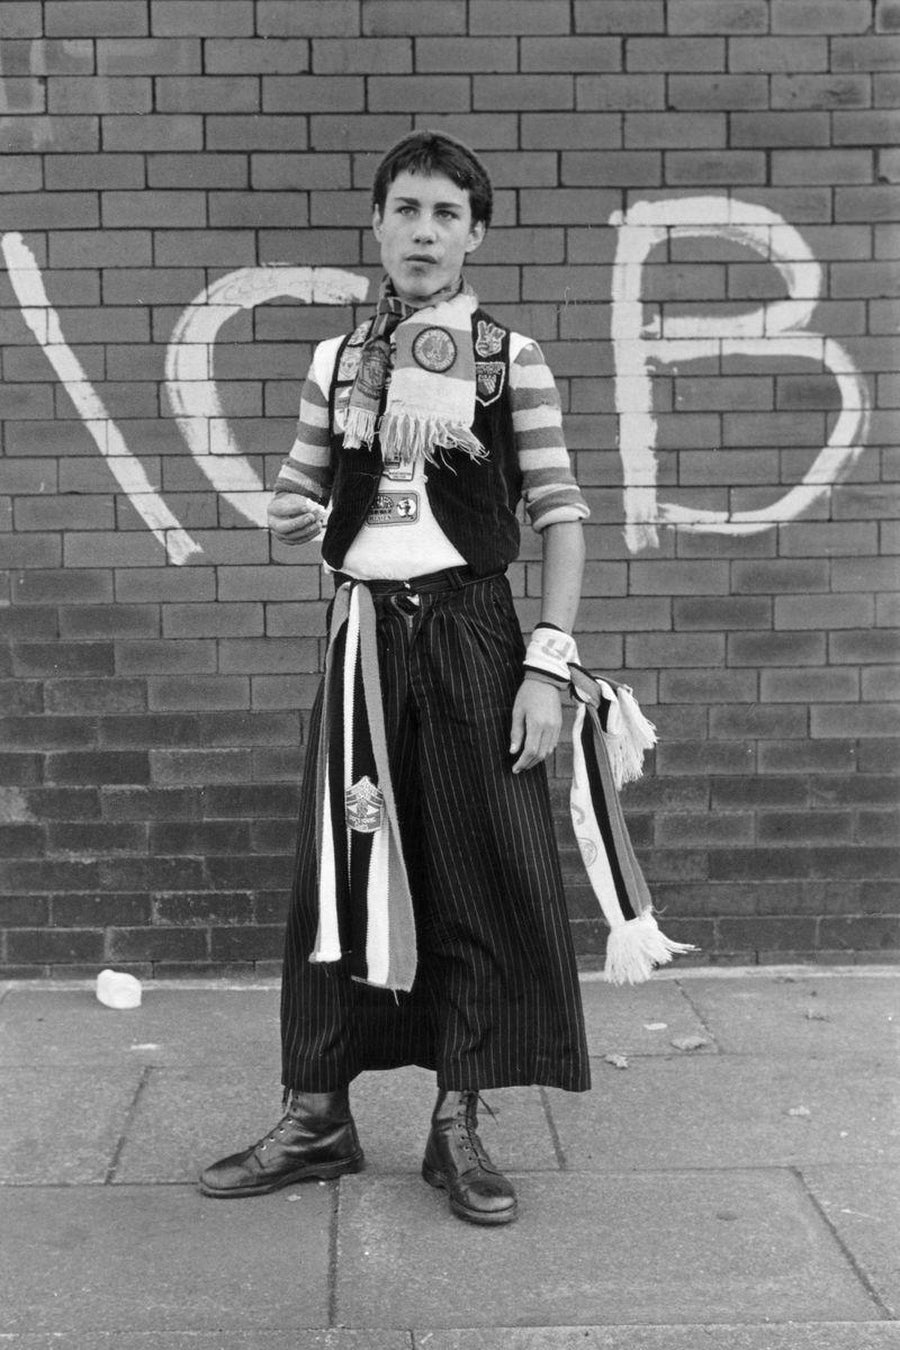 Skirt or Trousers? Stylish Manchester United Fan Dressed For the Match by Iain S. P. Reid, c. 1977